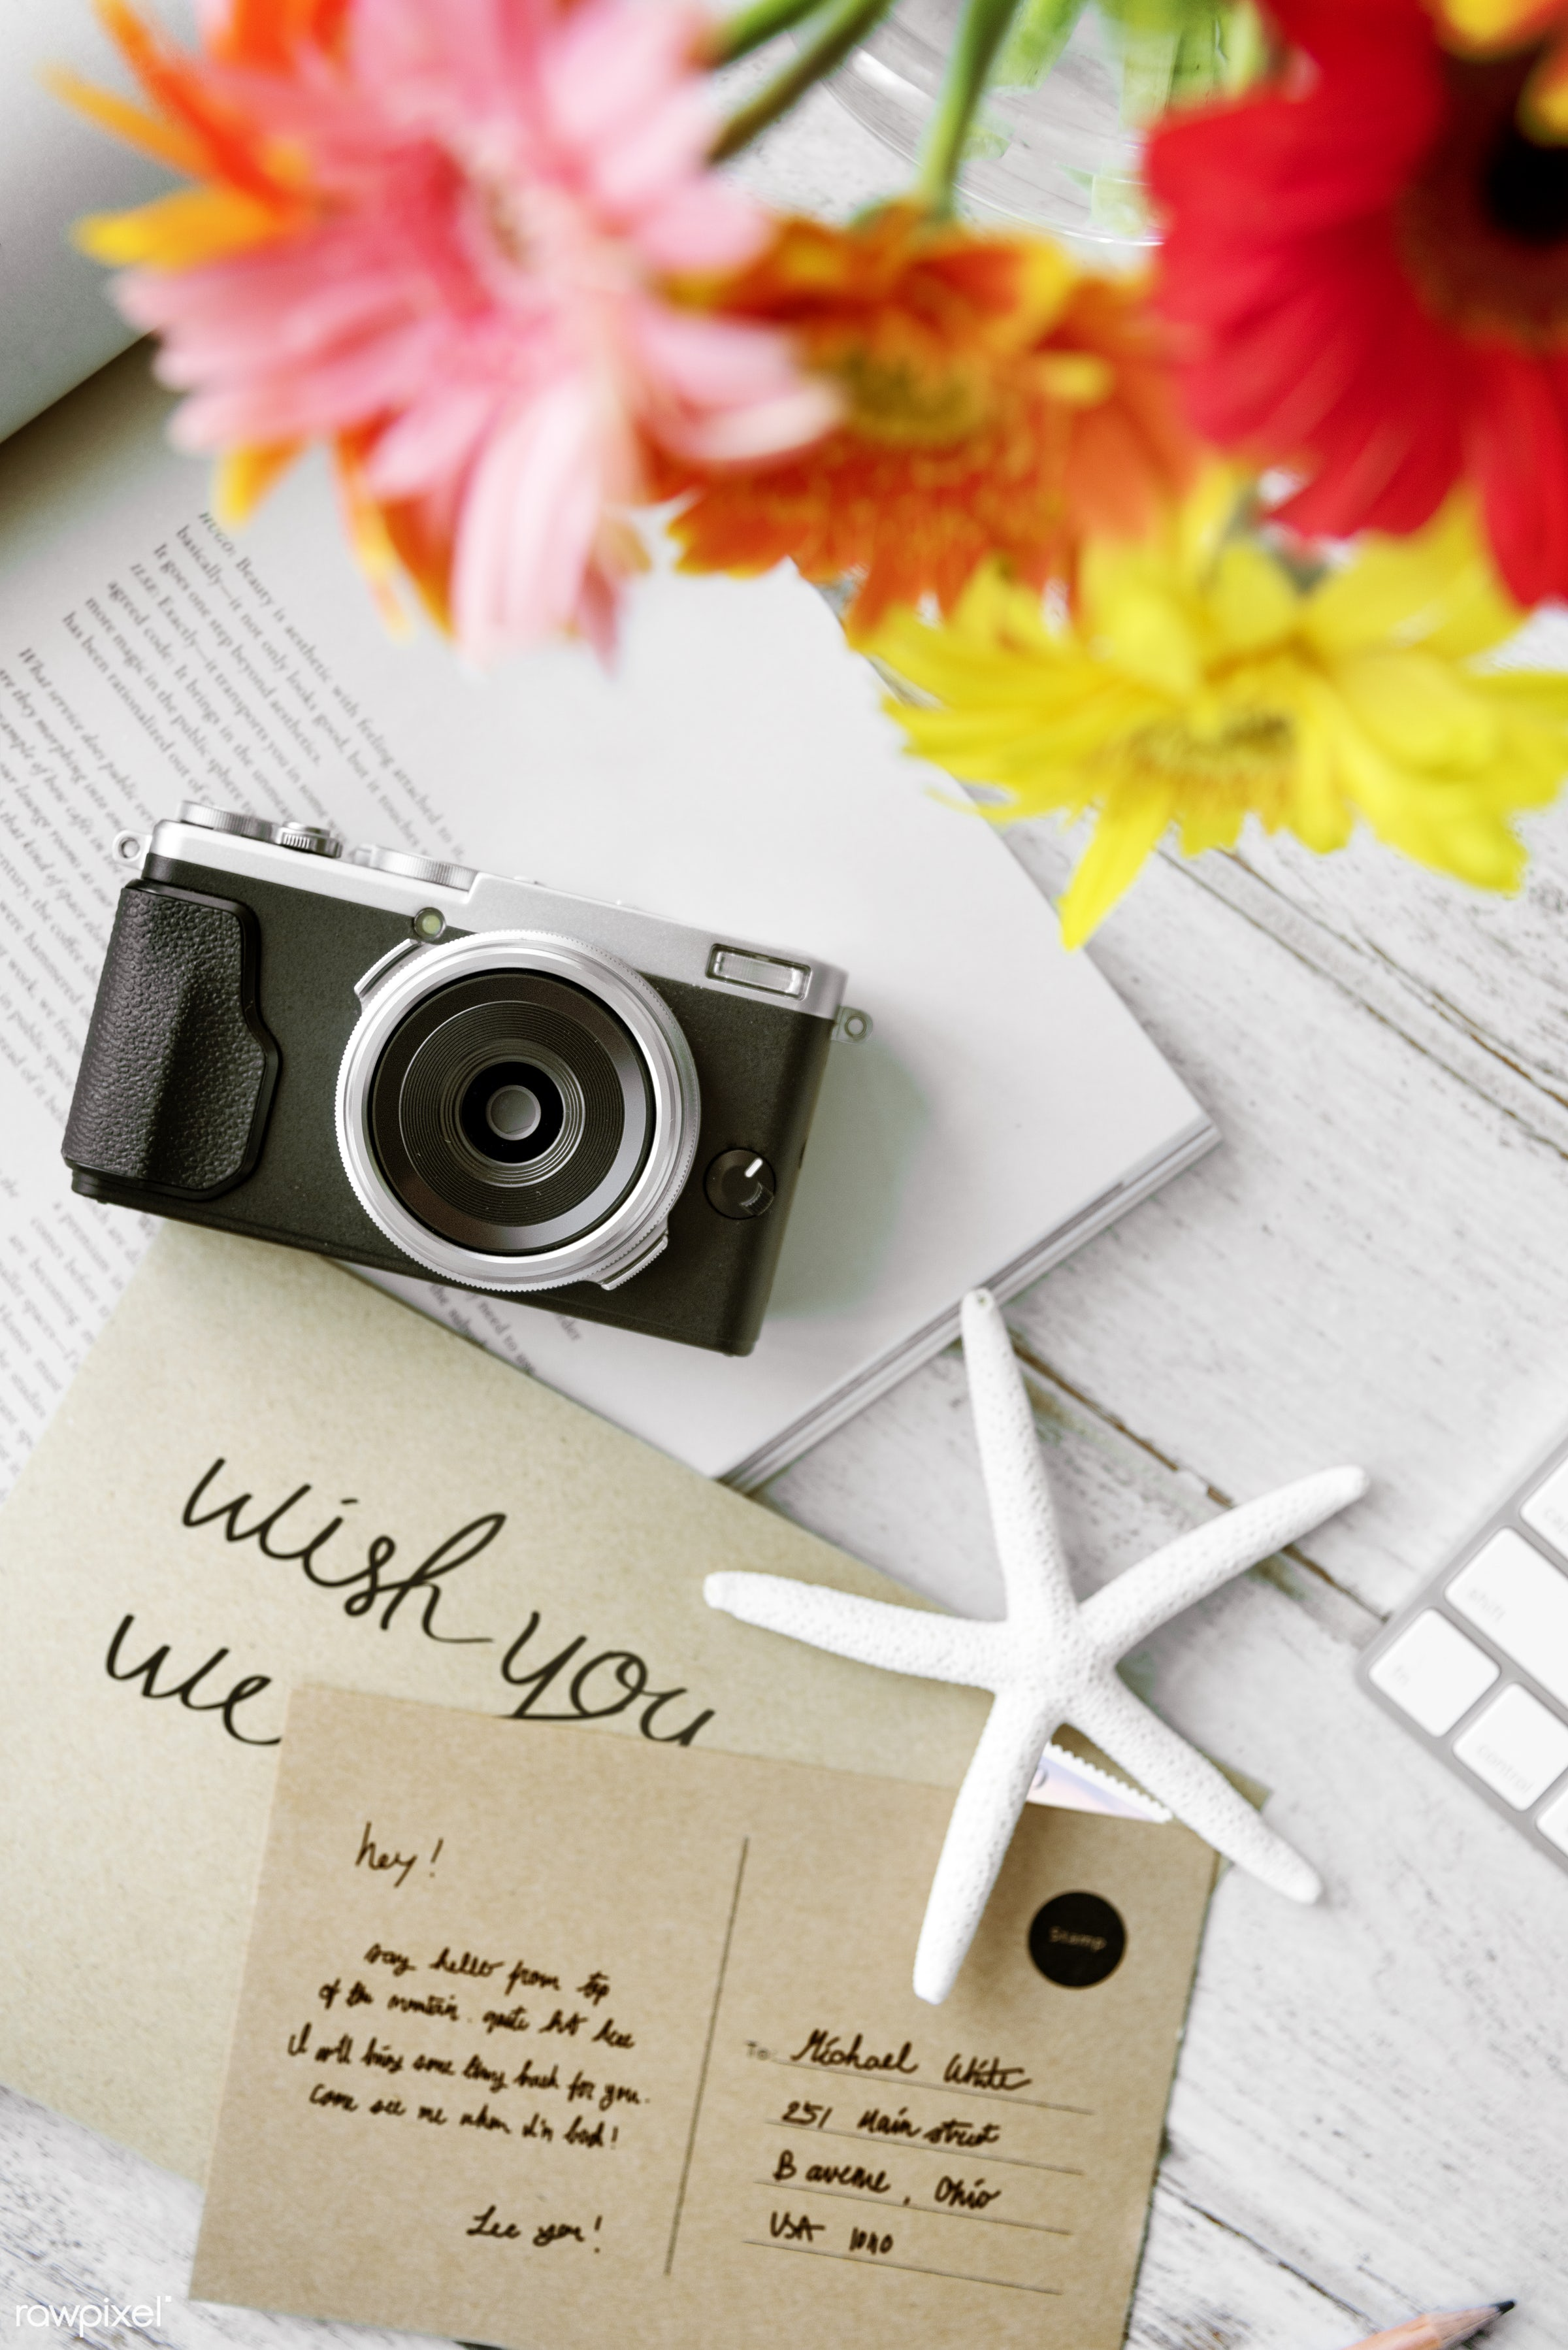 aerial, analog, camera, card, closeup, colorful, film camera, flat lay, flowers, holiday, journey, leisure, letter,...